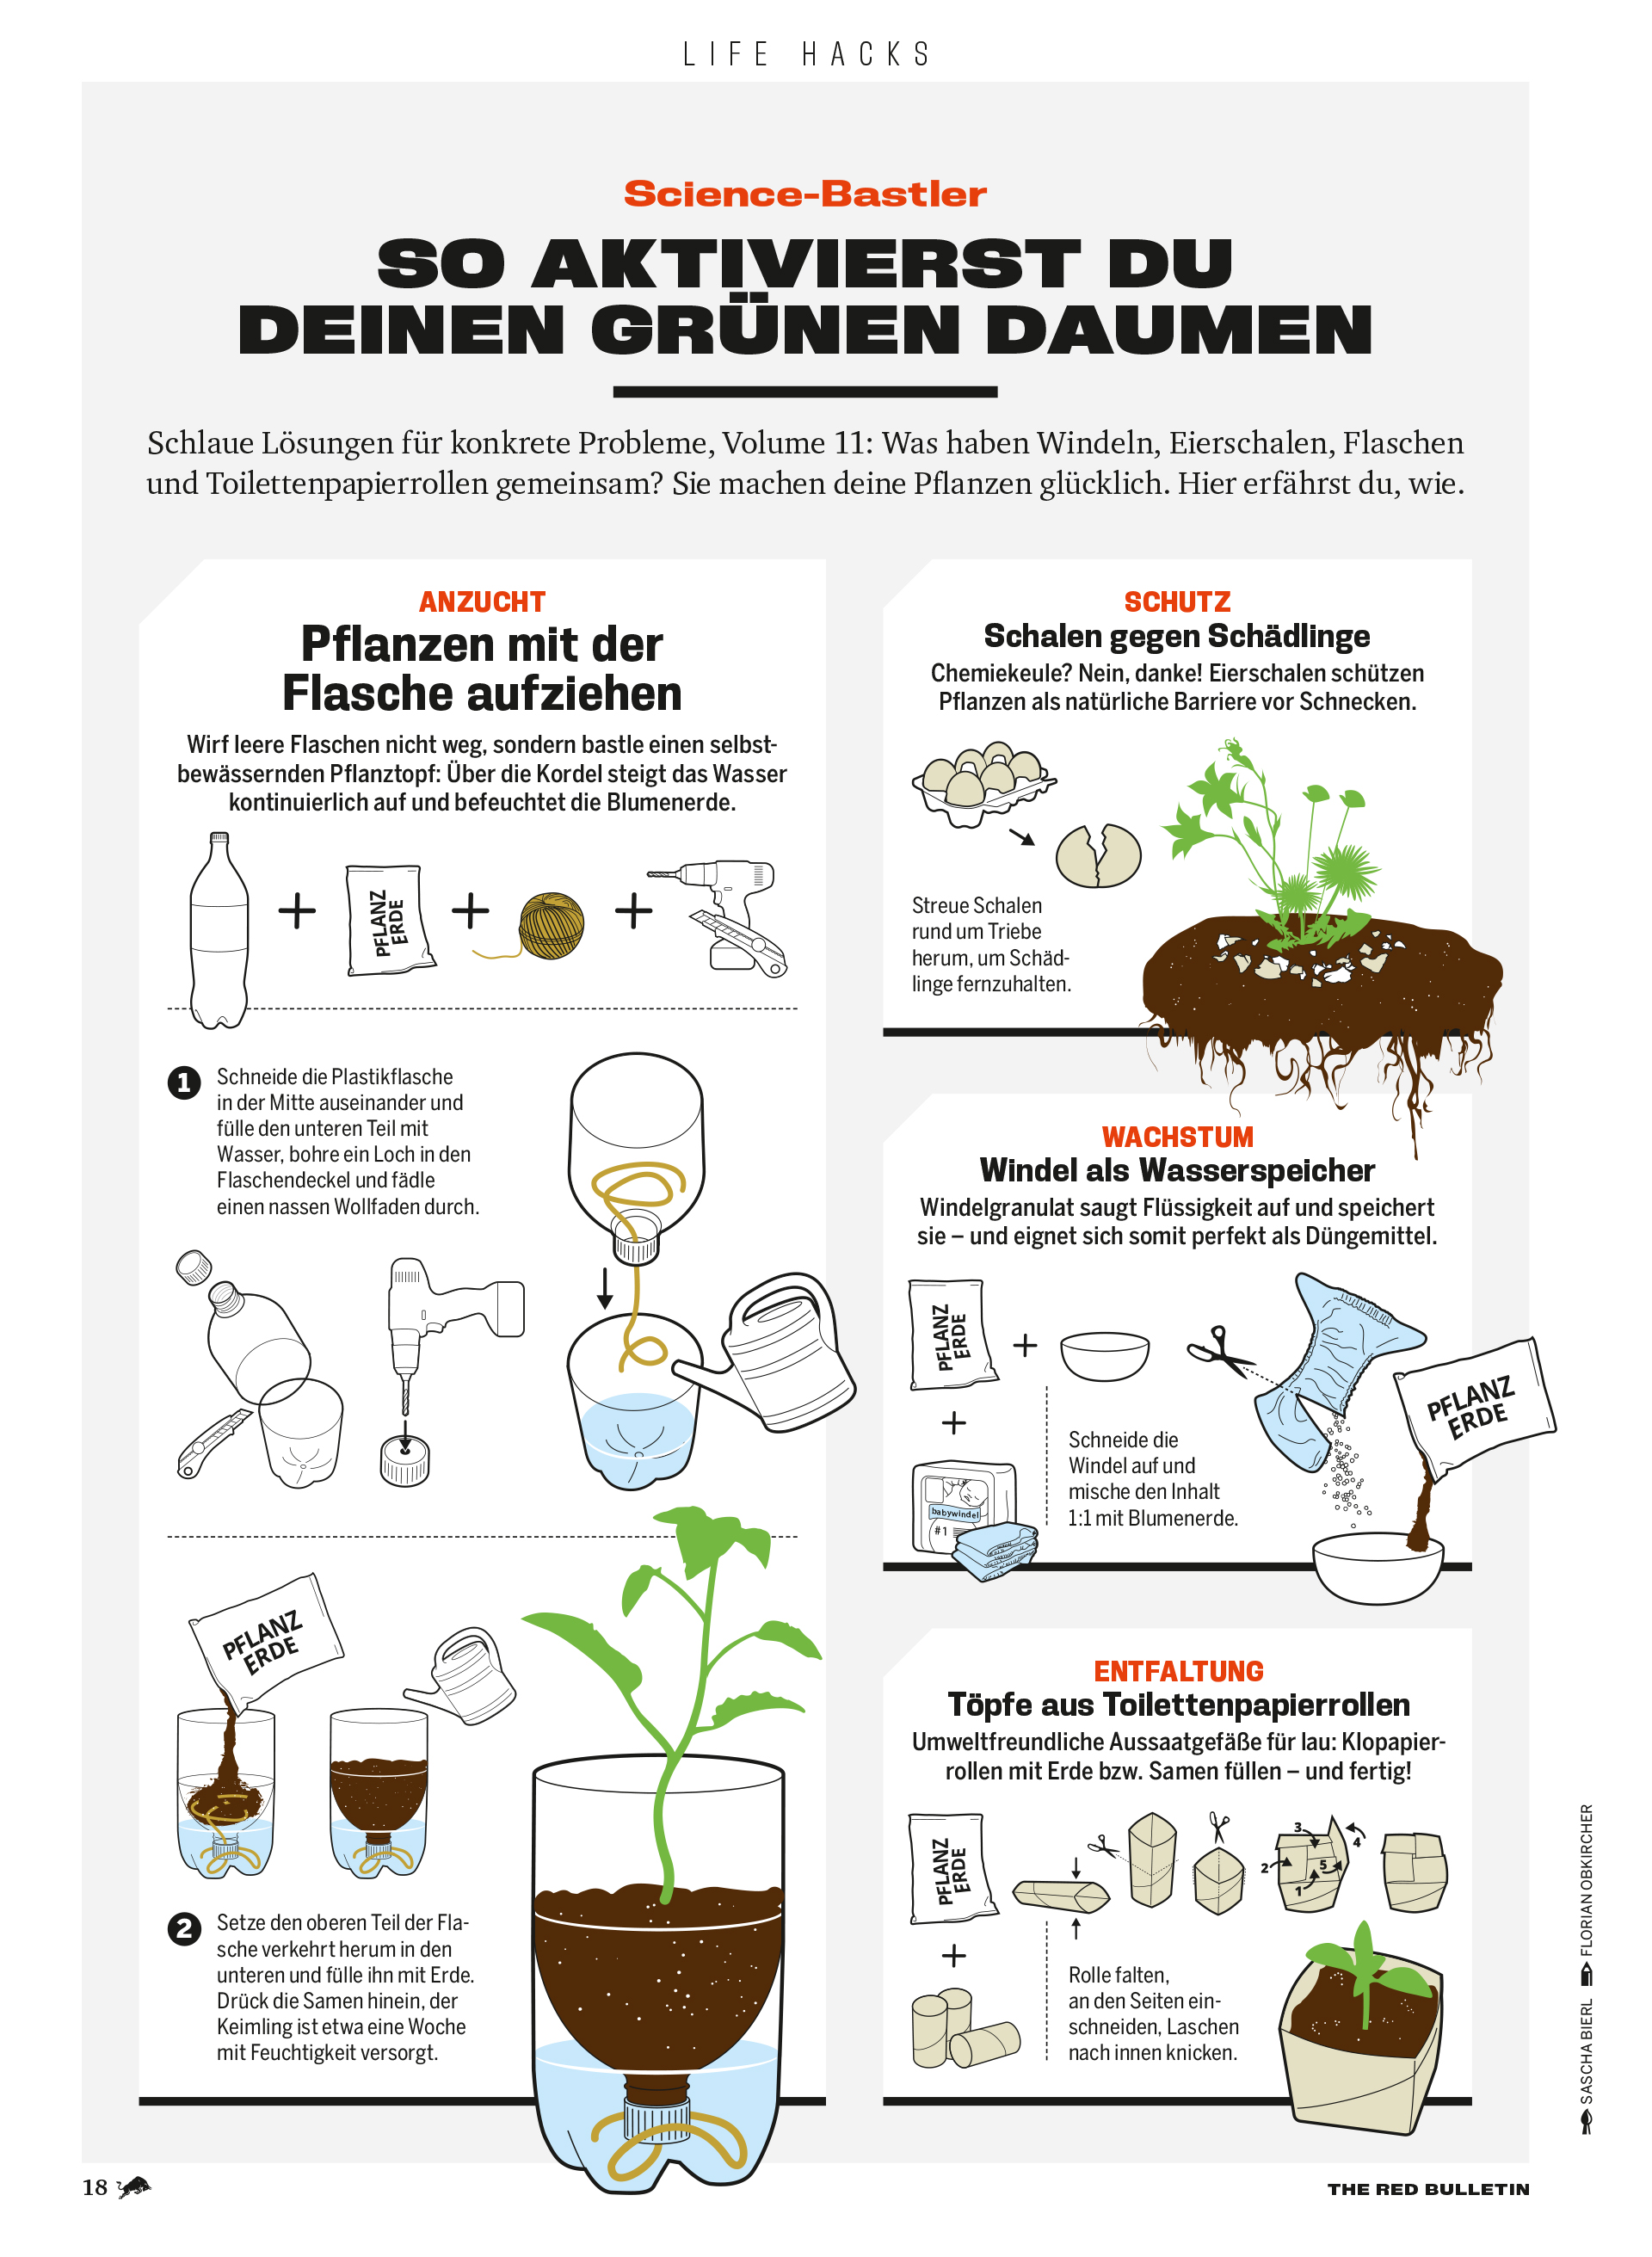 Illustrationen Lifehacks The Red Bulletin 0819